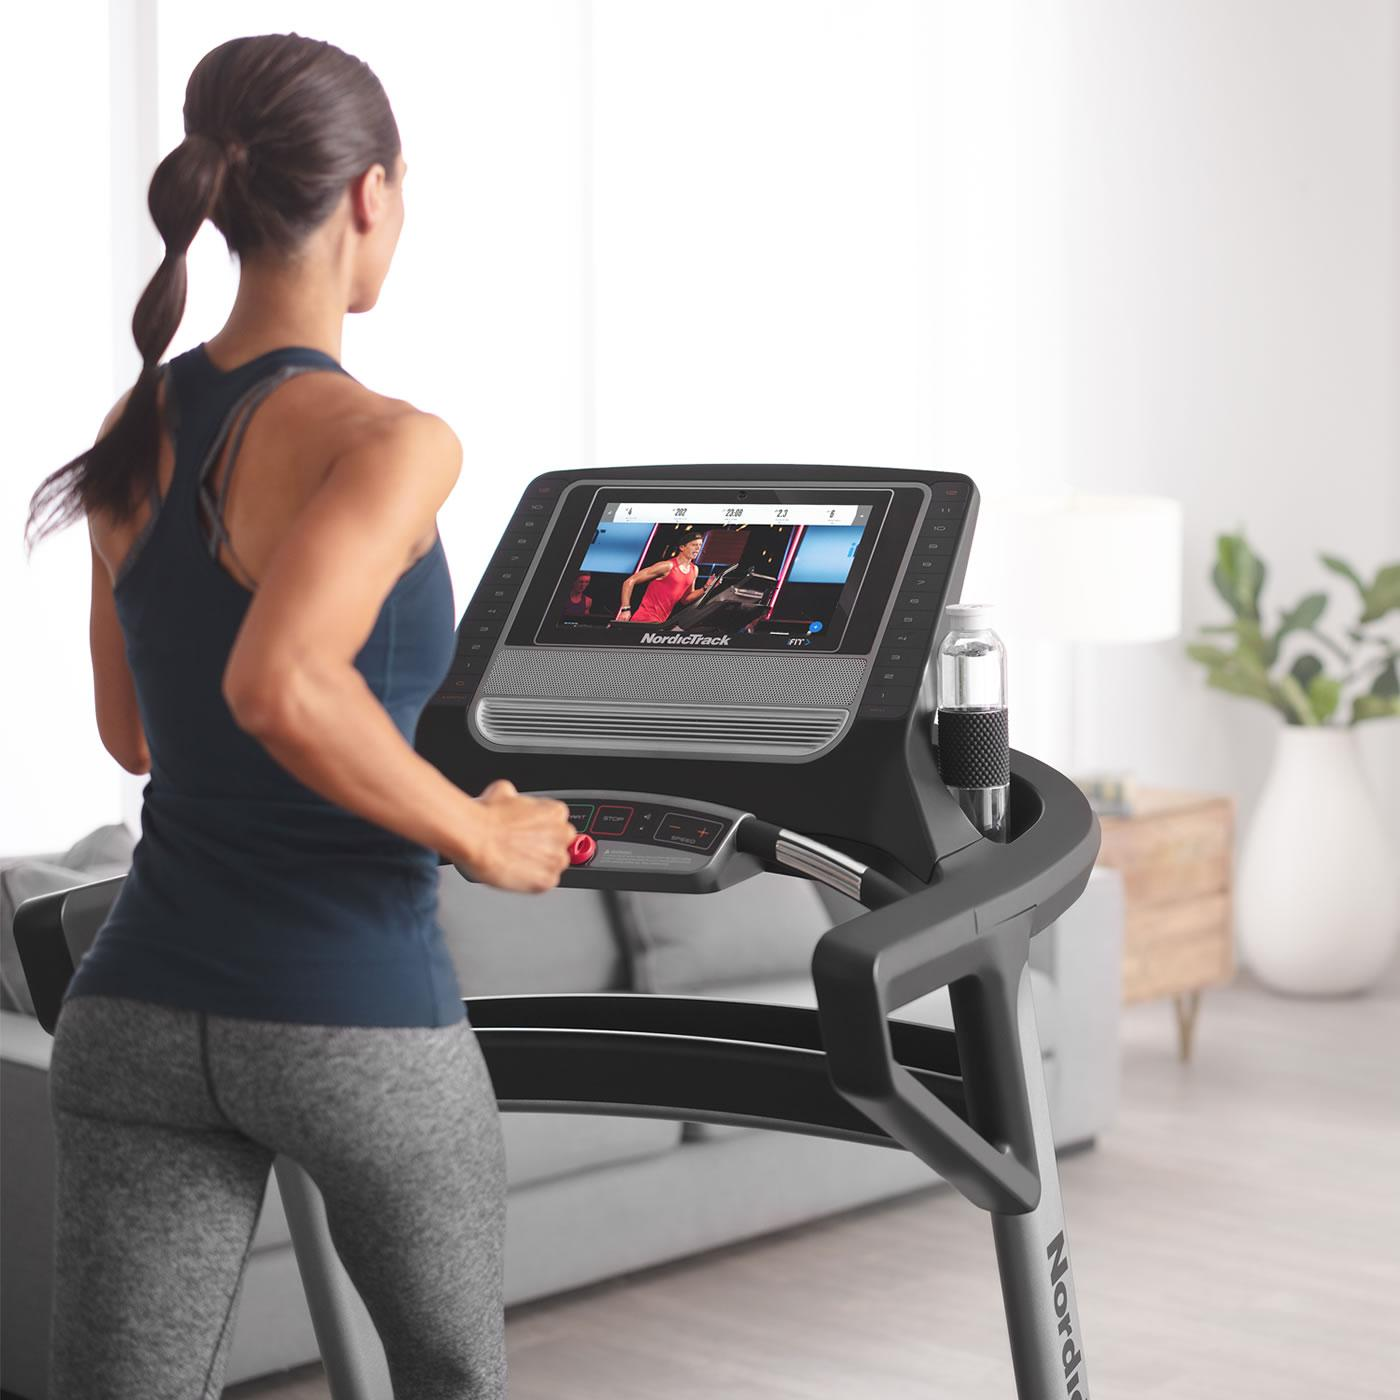 The T 9.5 S Treadmill by Nordictrack  is exactly the same as the T 8.5 model except for the 14 inch touchscreen which is 4 inches wider